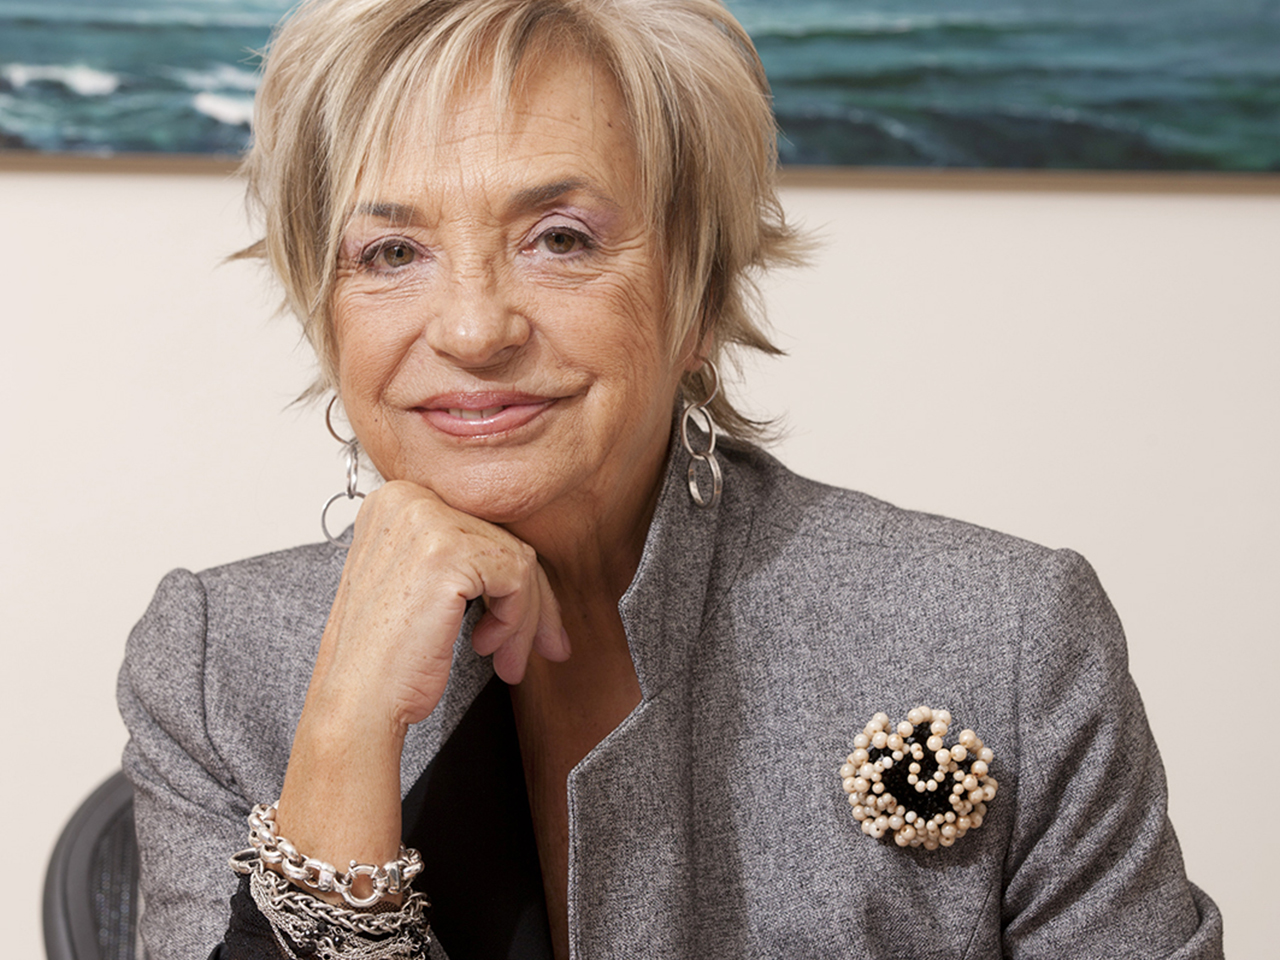 FILE - August 16, 2013: Rosalia Mera, co-founder of Spanish brand Zara, died yesterday aged 69 following a brain hemorrhage whilst on holiday in Menorca. Mera was thought to have been the world's richest self-made woman, with an estimated 4.57 billion net worth. A CORUNA, SPAIN - NOVEMBER 16, 2010: Rosalia Mera, founder of Zara with ex husband Amancio Ortega, poses for a portrait at the headquarters of the Paideia Foundation on November 16, 2010 in A Coruna, Spain. (Photo by Xurxo Lobato/Getty Images)